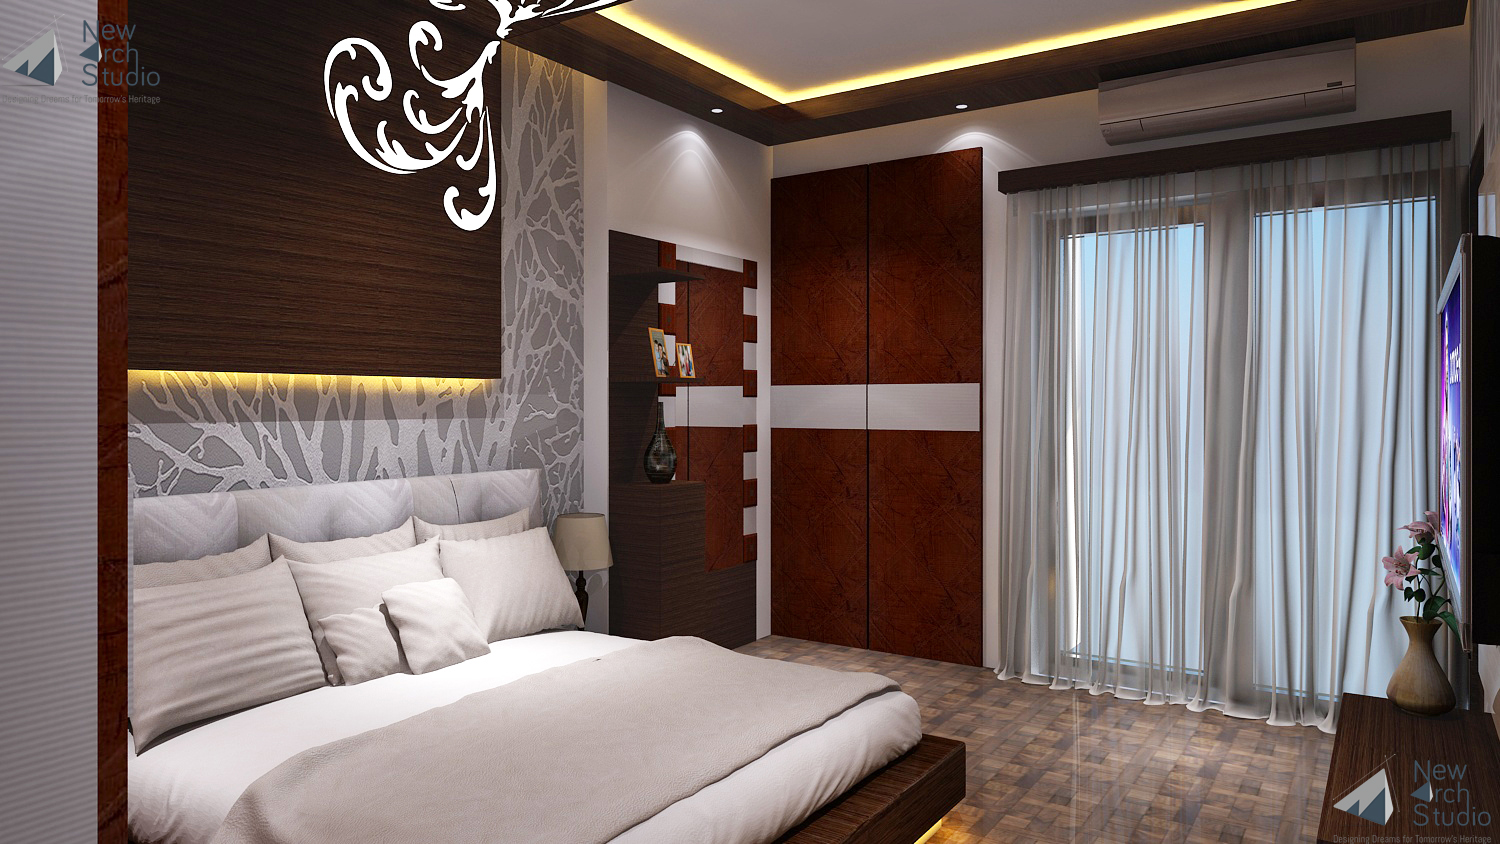 Bedroom Interior Design For Residence Done By New Arch Studio